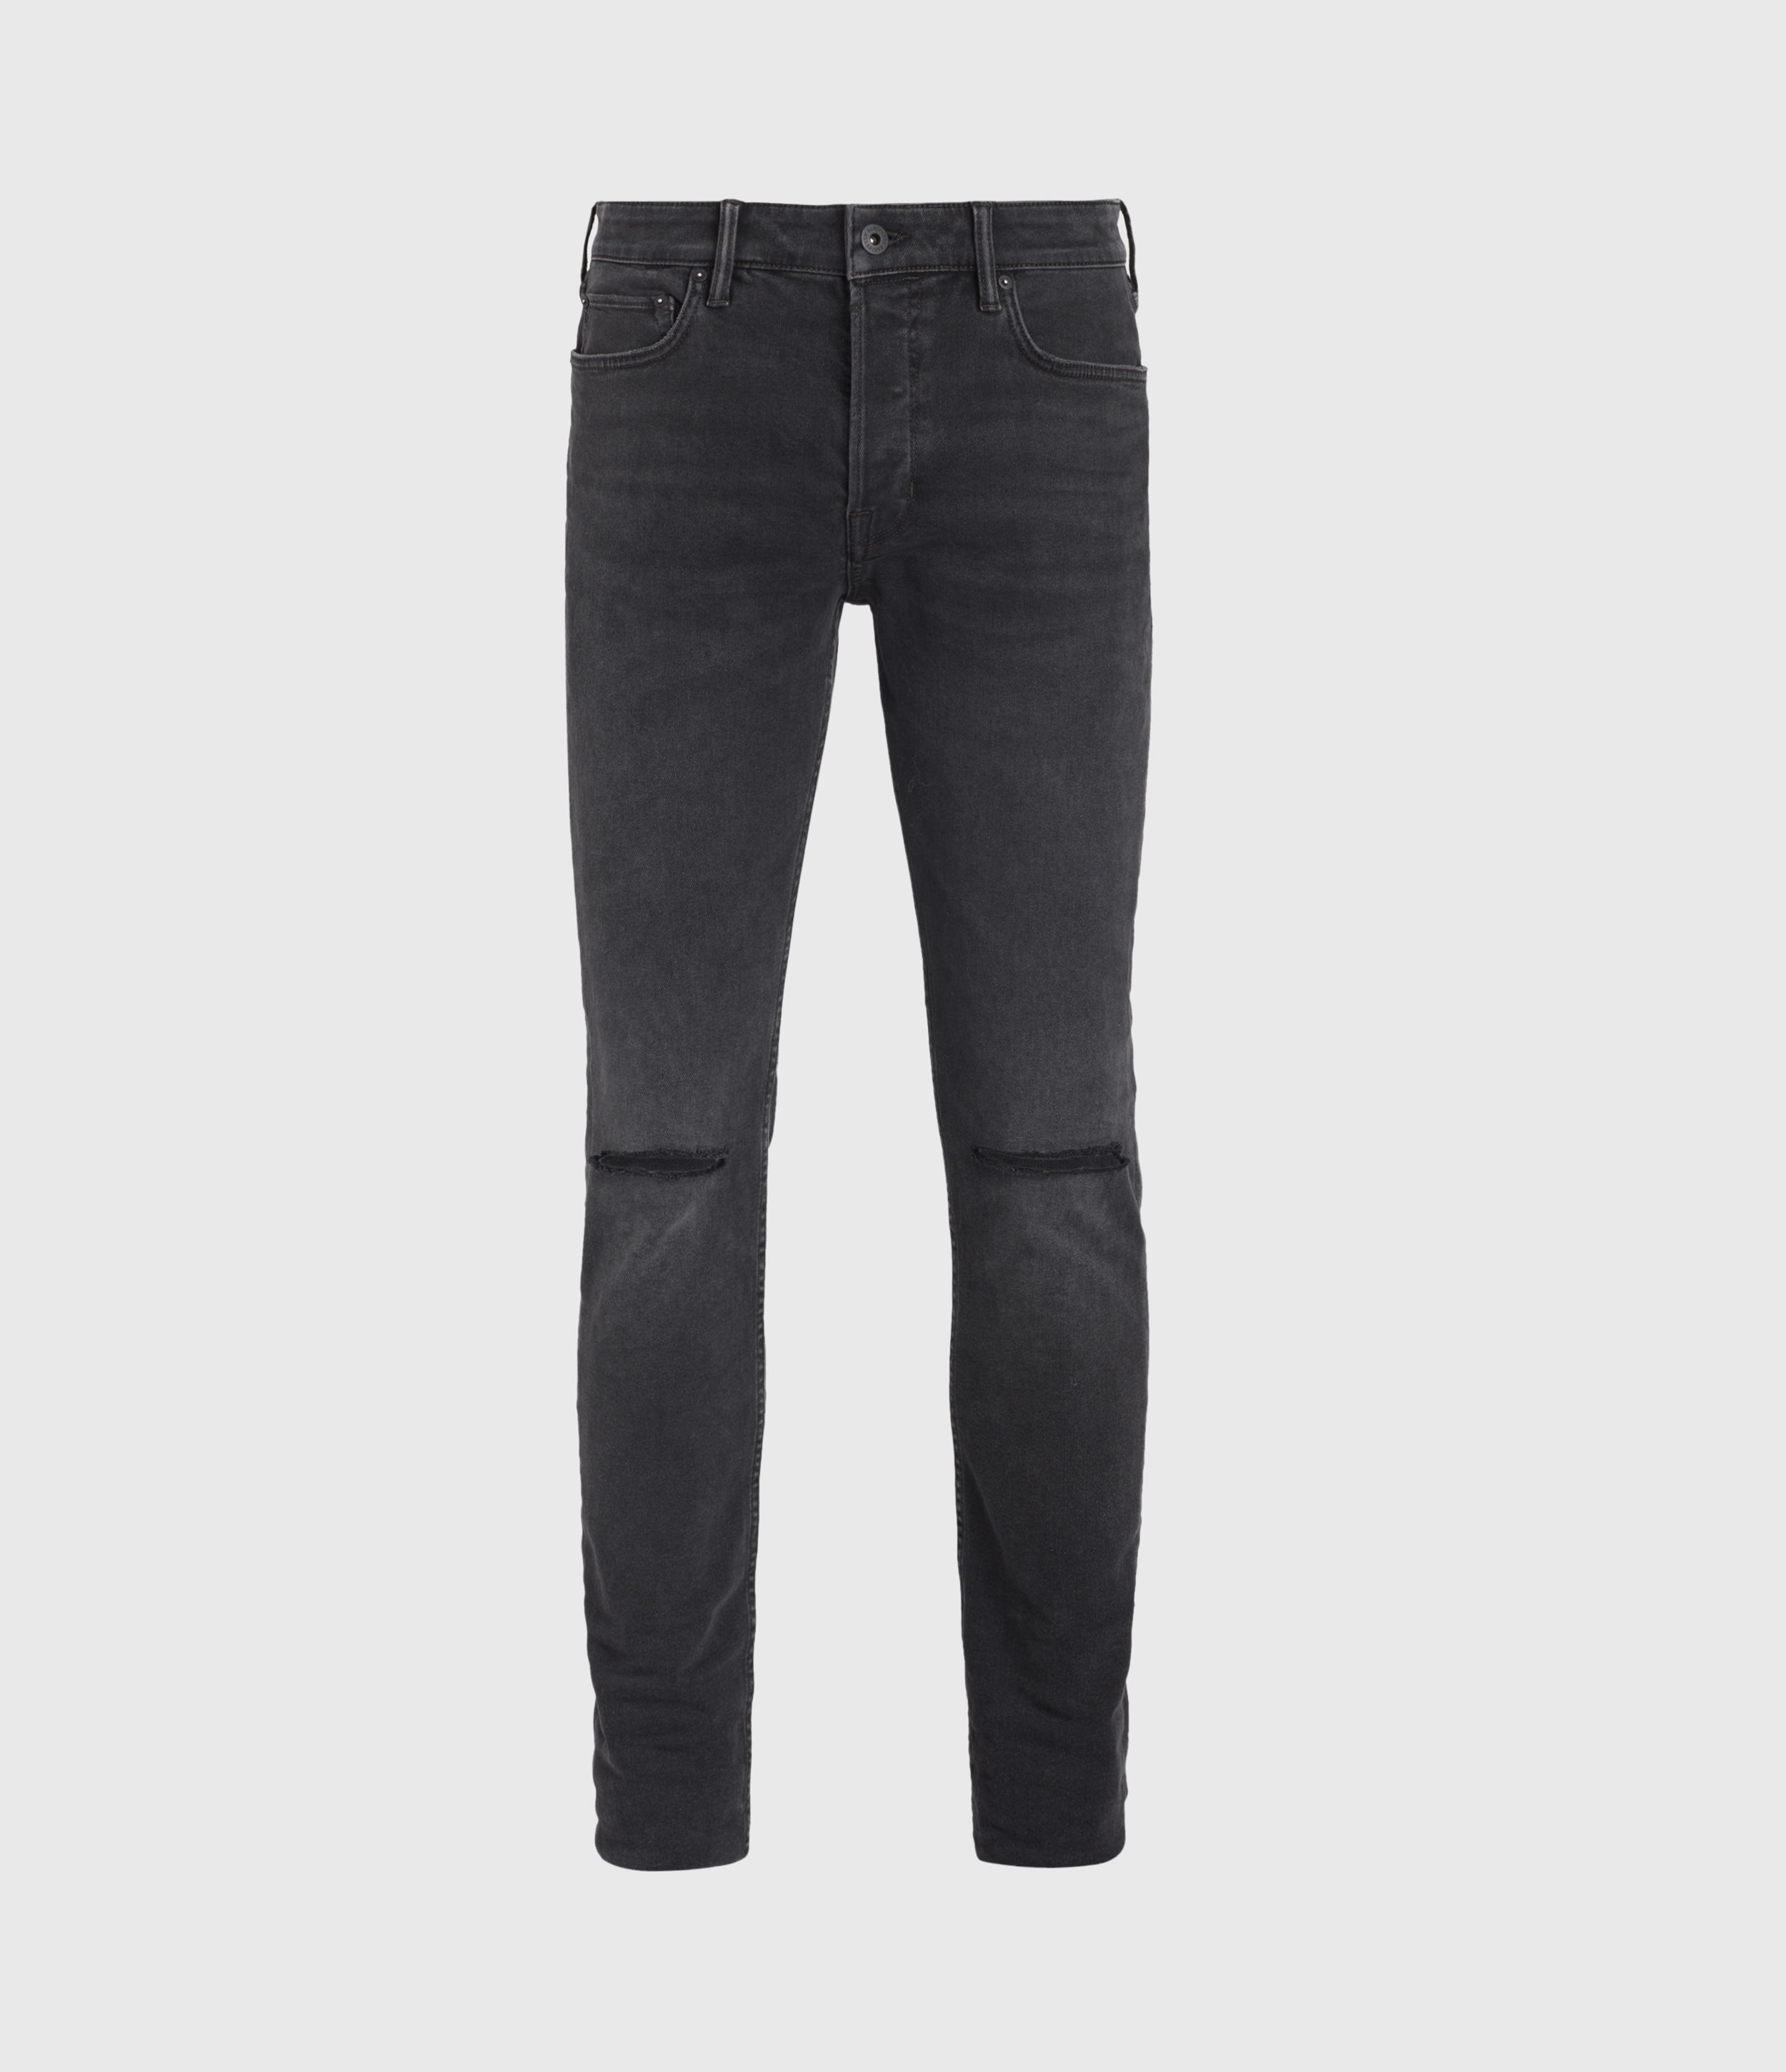 AllSaints Cigarette Damaged Skinny Jeans, Washed Black